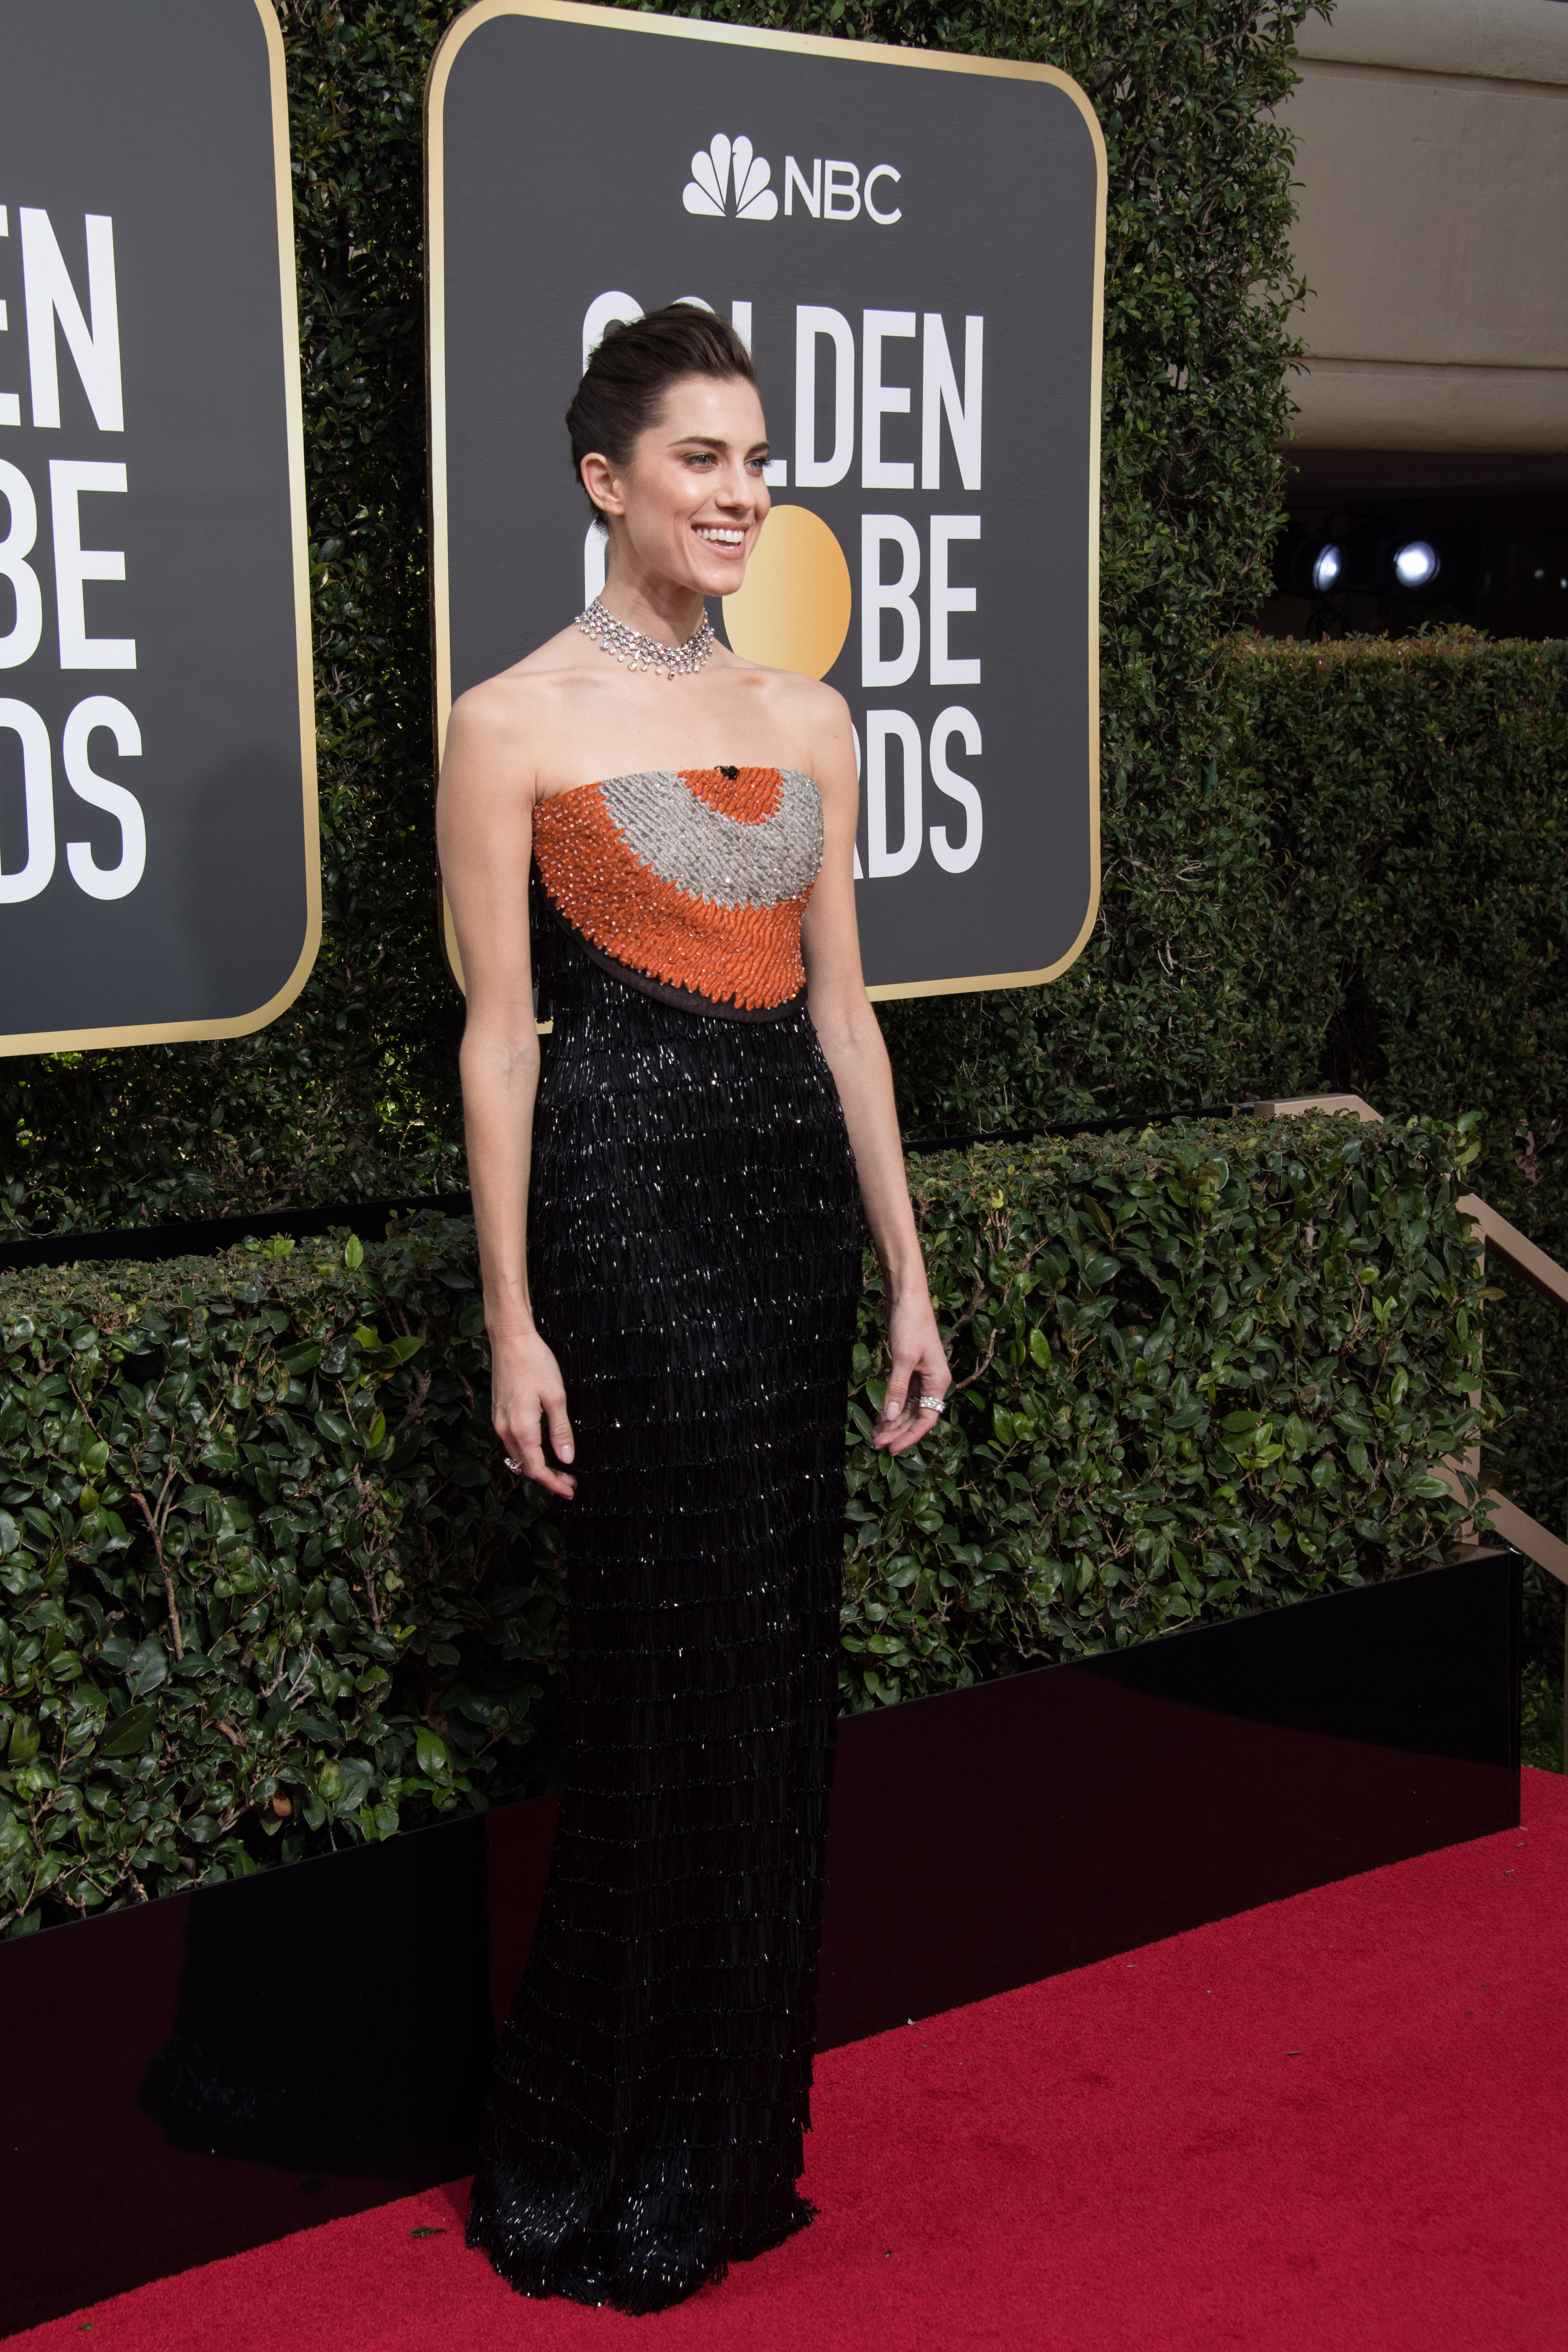 Allison Williams arrives at the 75th Annual Golden Globes Awards at the Beverly Hilton in Beverly Hills, CA on Sunday, January 7, 2018.